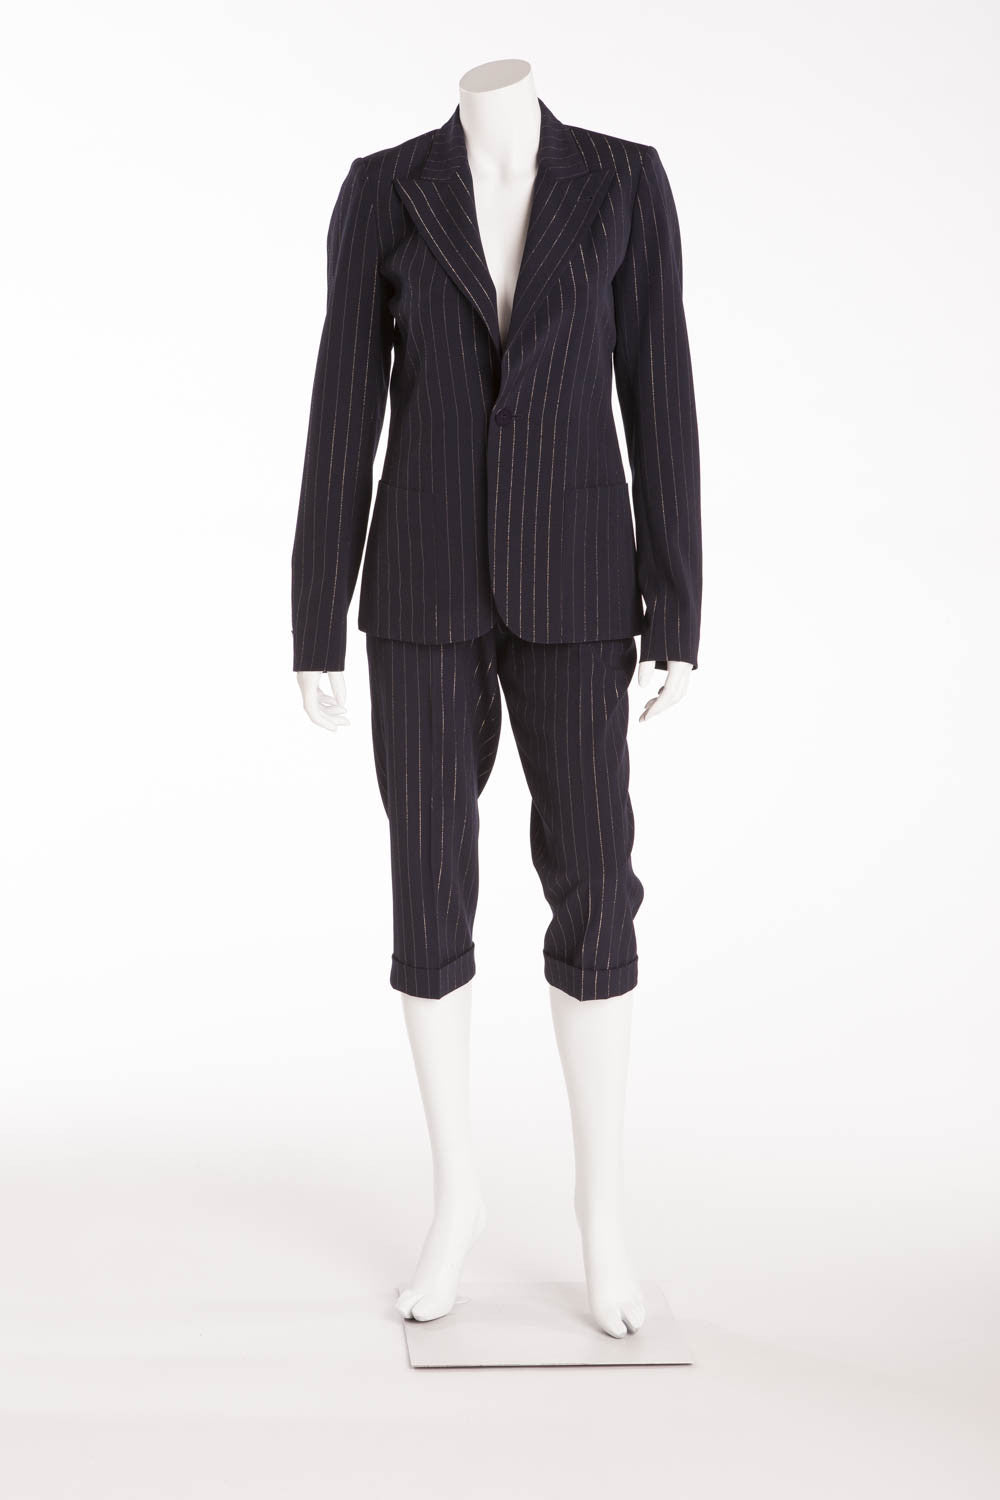 Jean Paul Gaultier - 2PC Dark Blue Pin with Gold Stripe Blazer and Capri - IT 40